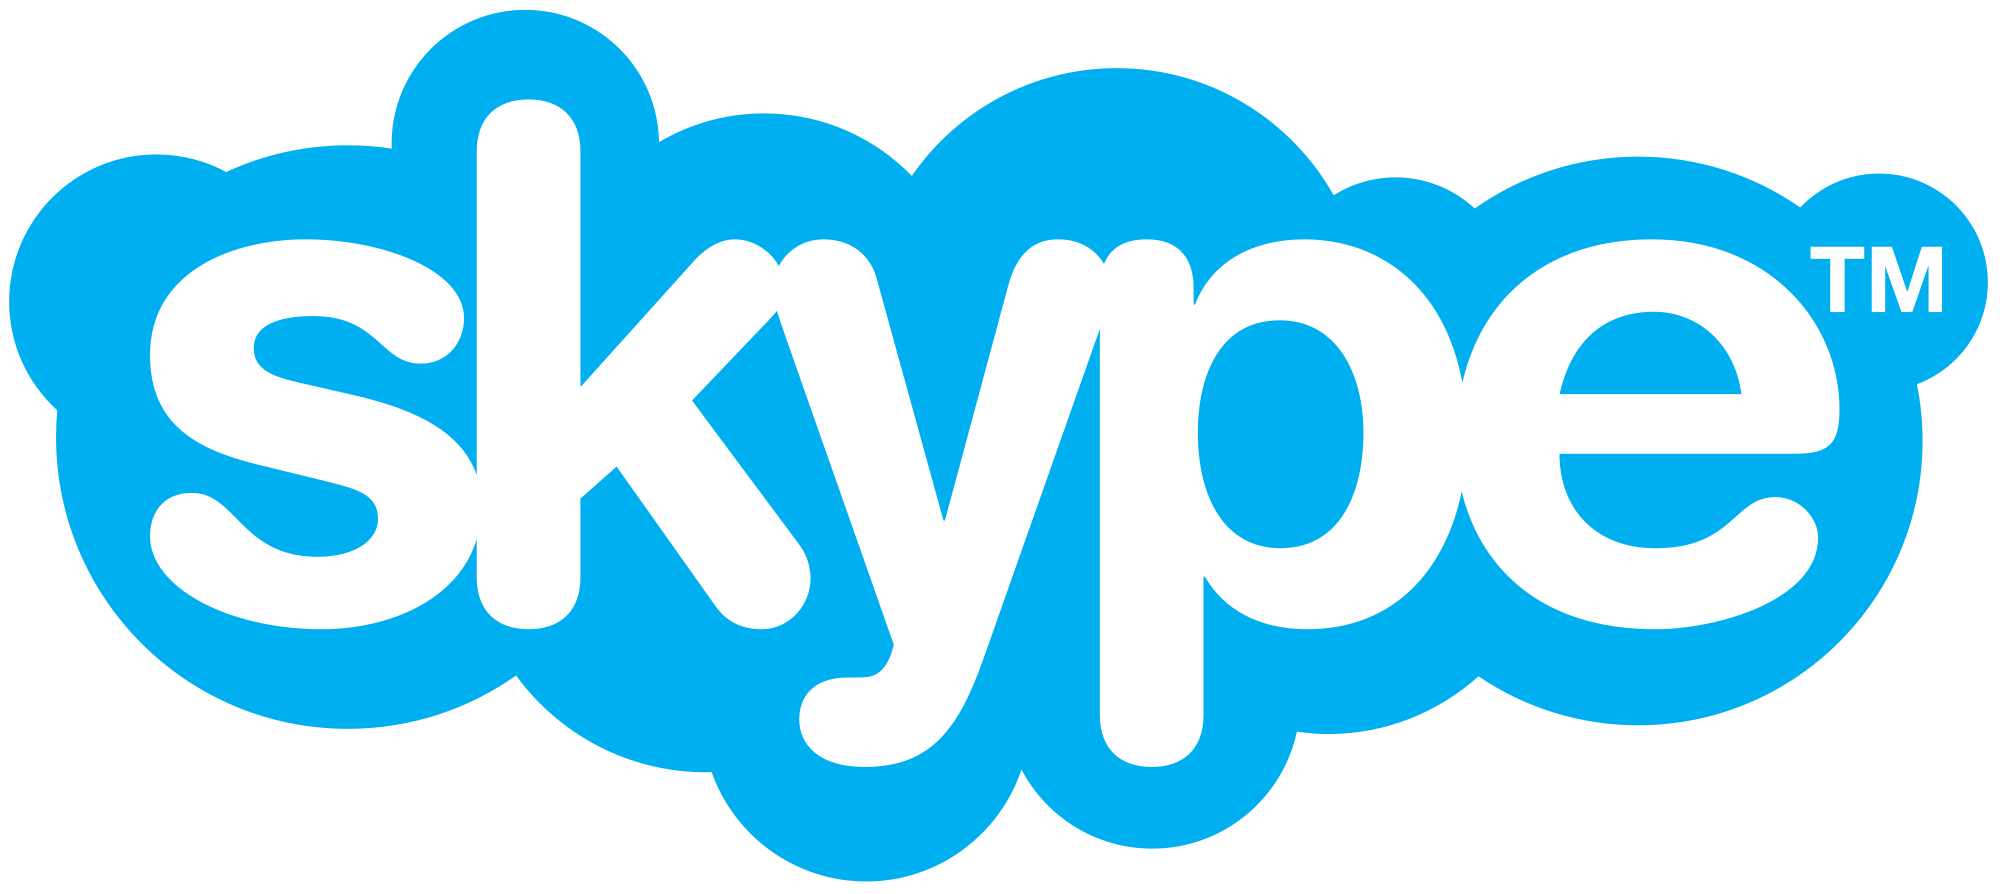 Skype icon png transparent. File logo svg wikimedia